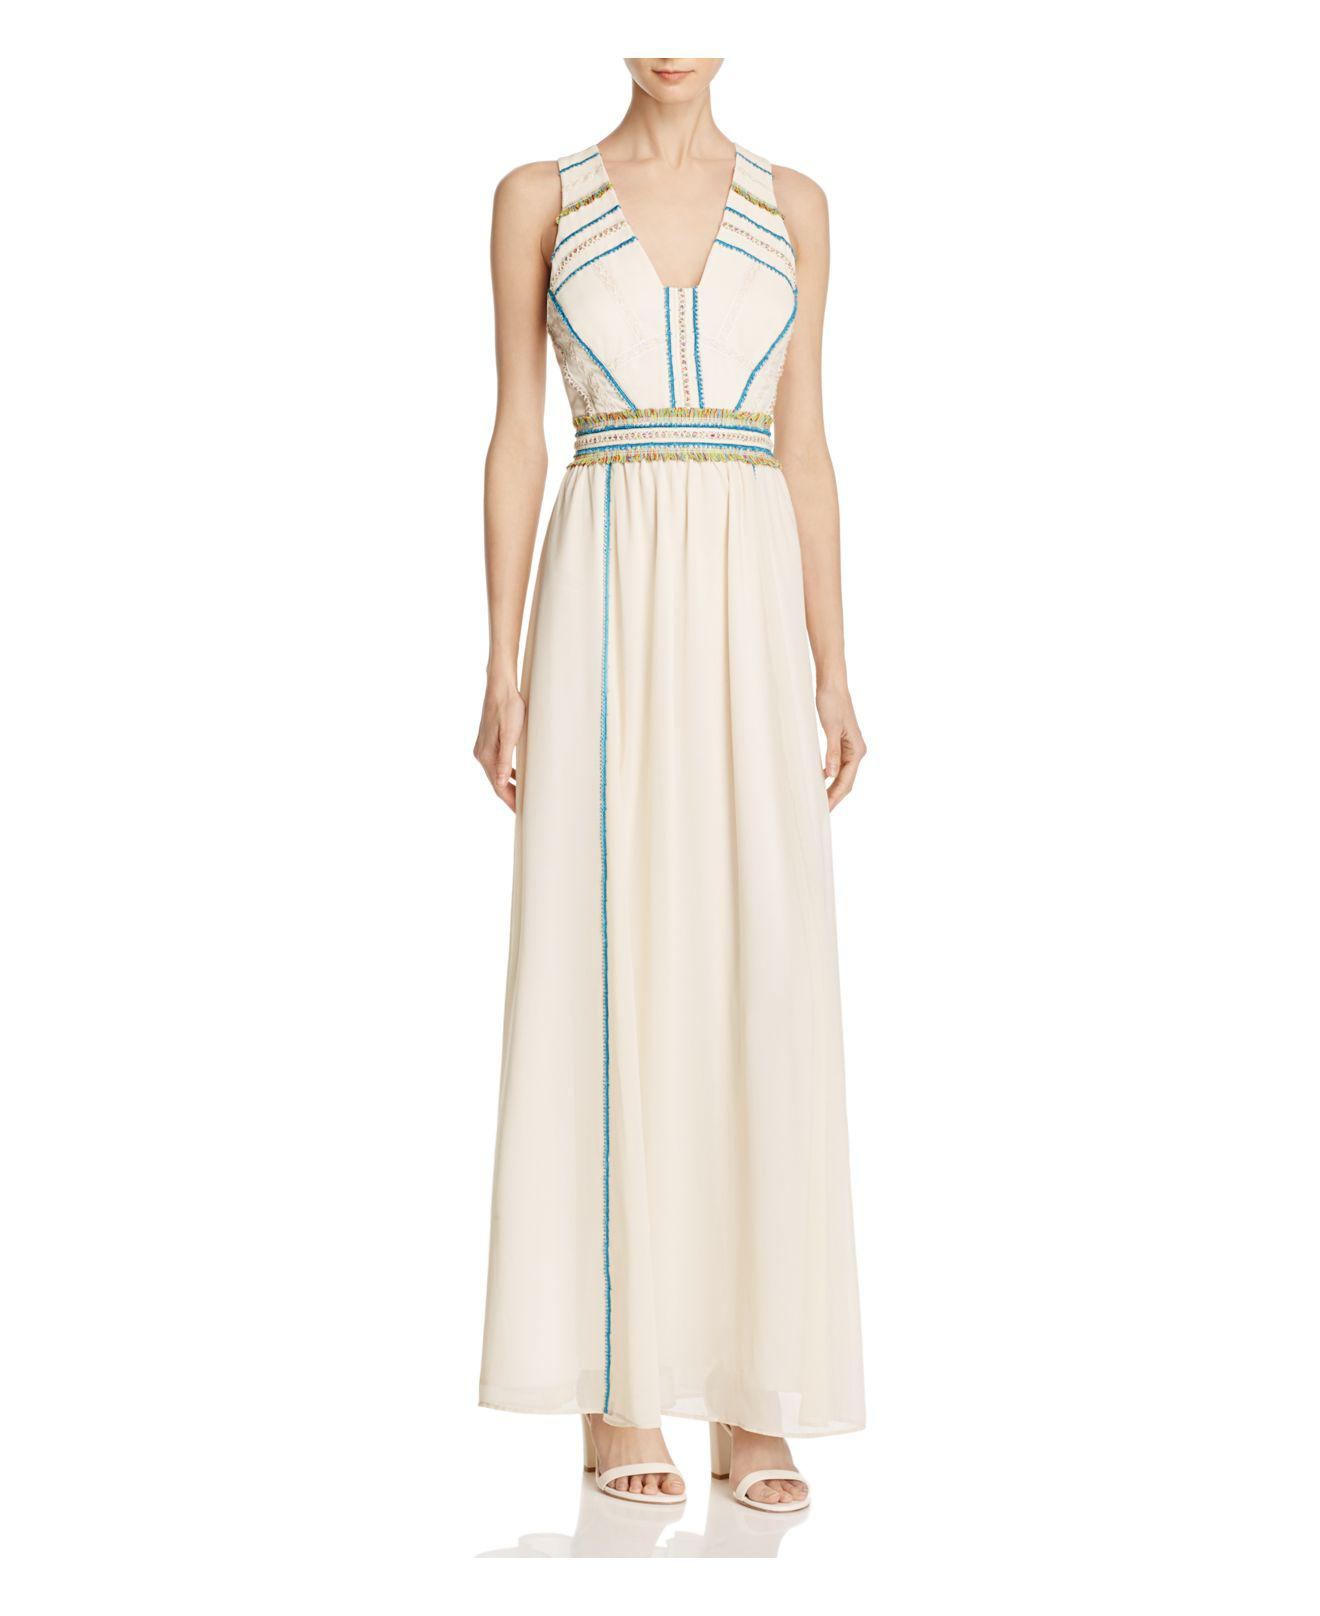 d9a84420aec84 Adelyn Rae Suzanne Fringe-trim Maxi Dress in Natural - Lyst